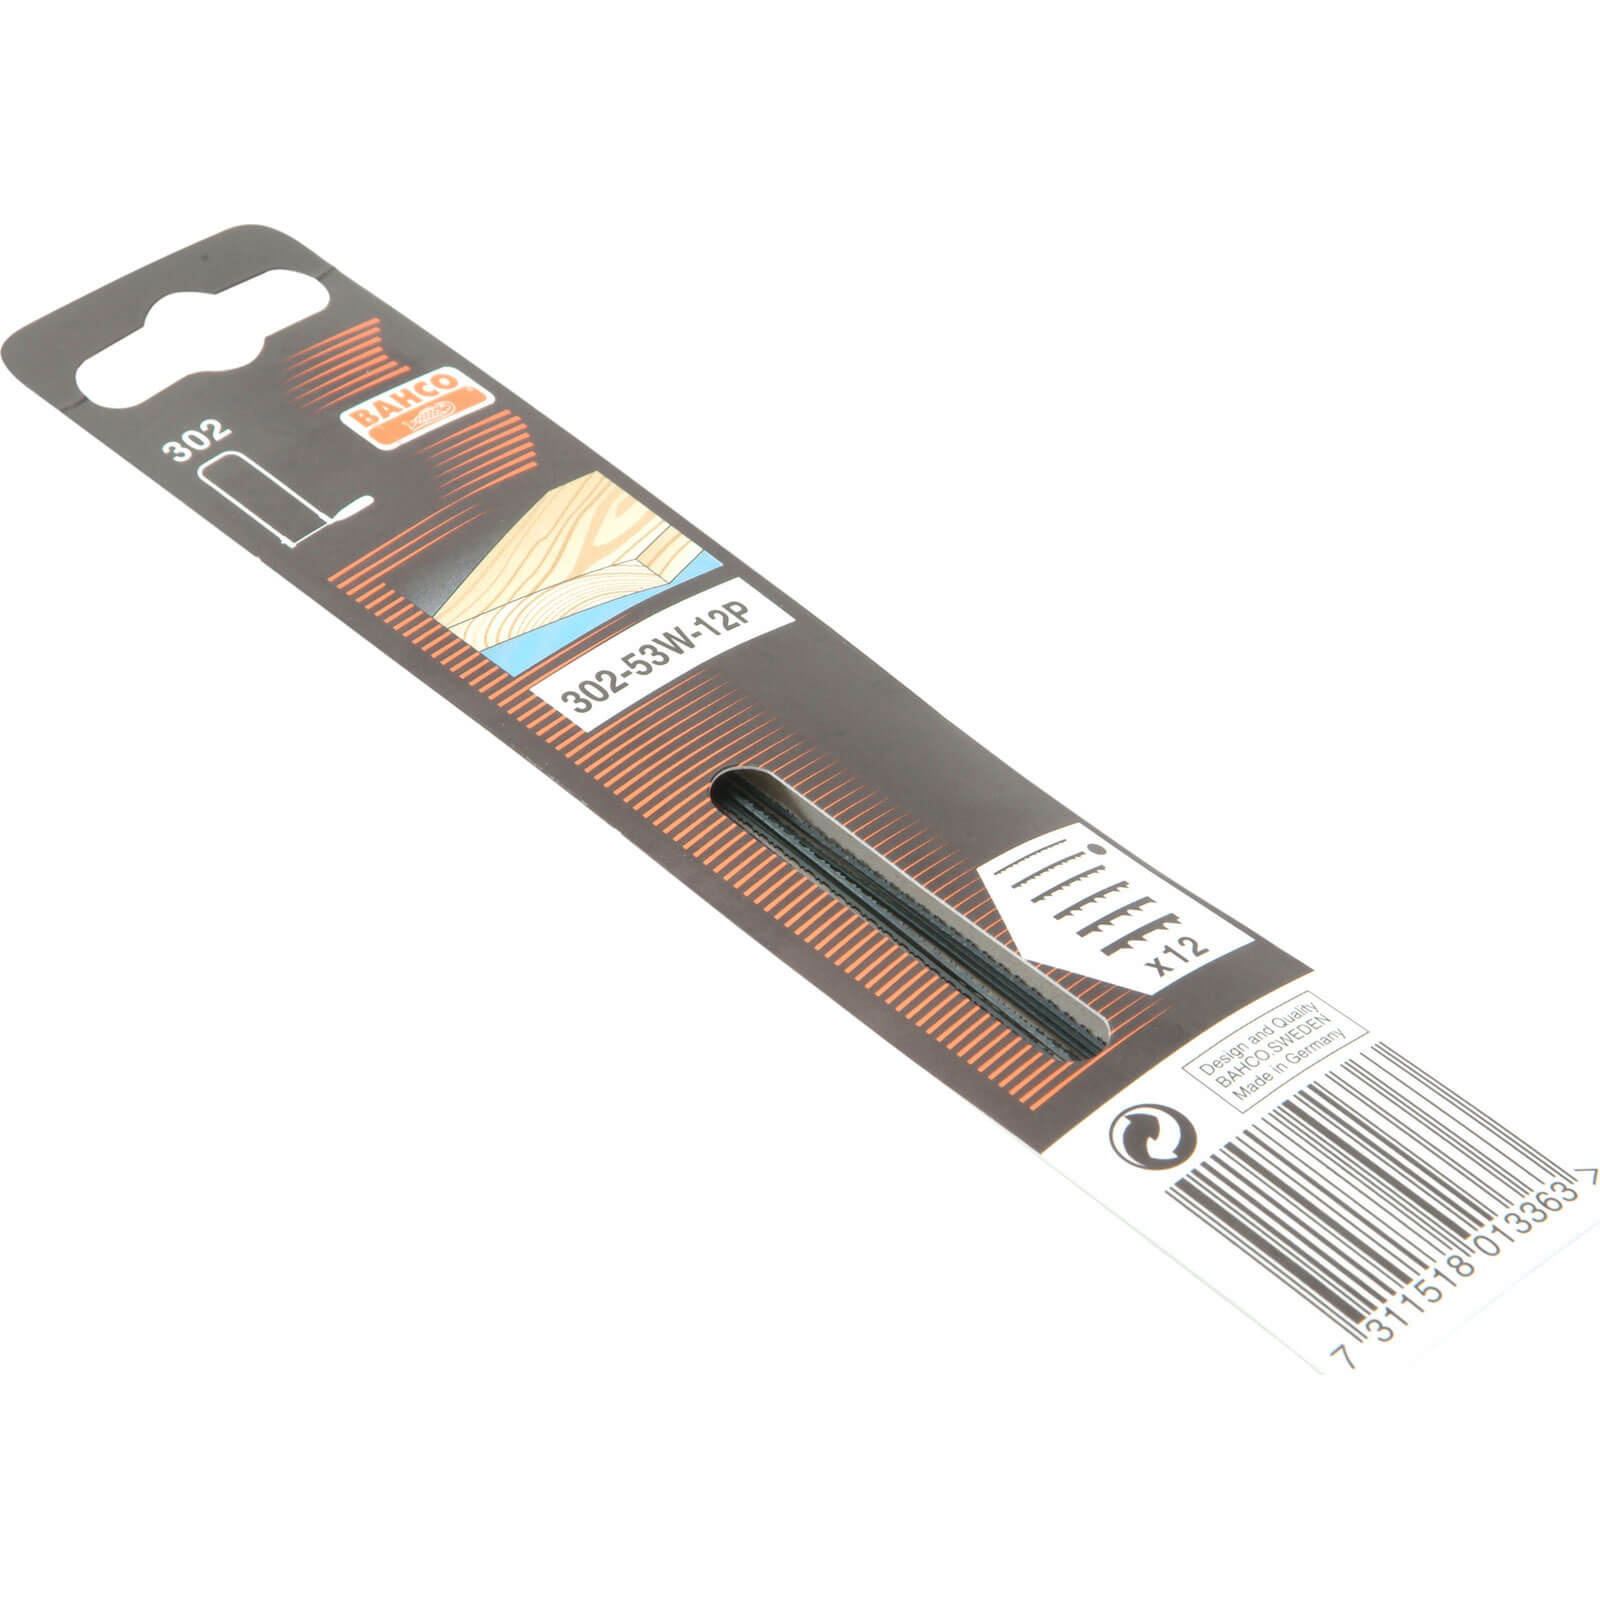 Image of Bahco Wood Fretsaw Blades 130mm Fine Pack of 1